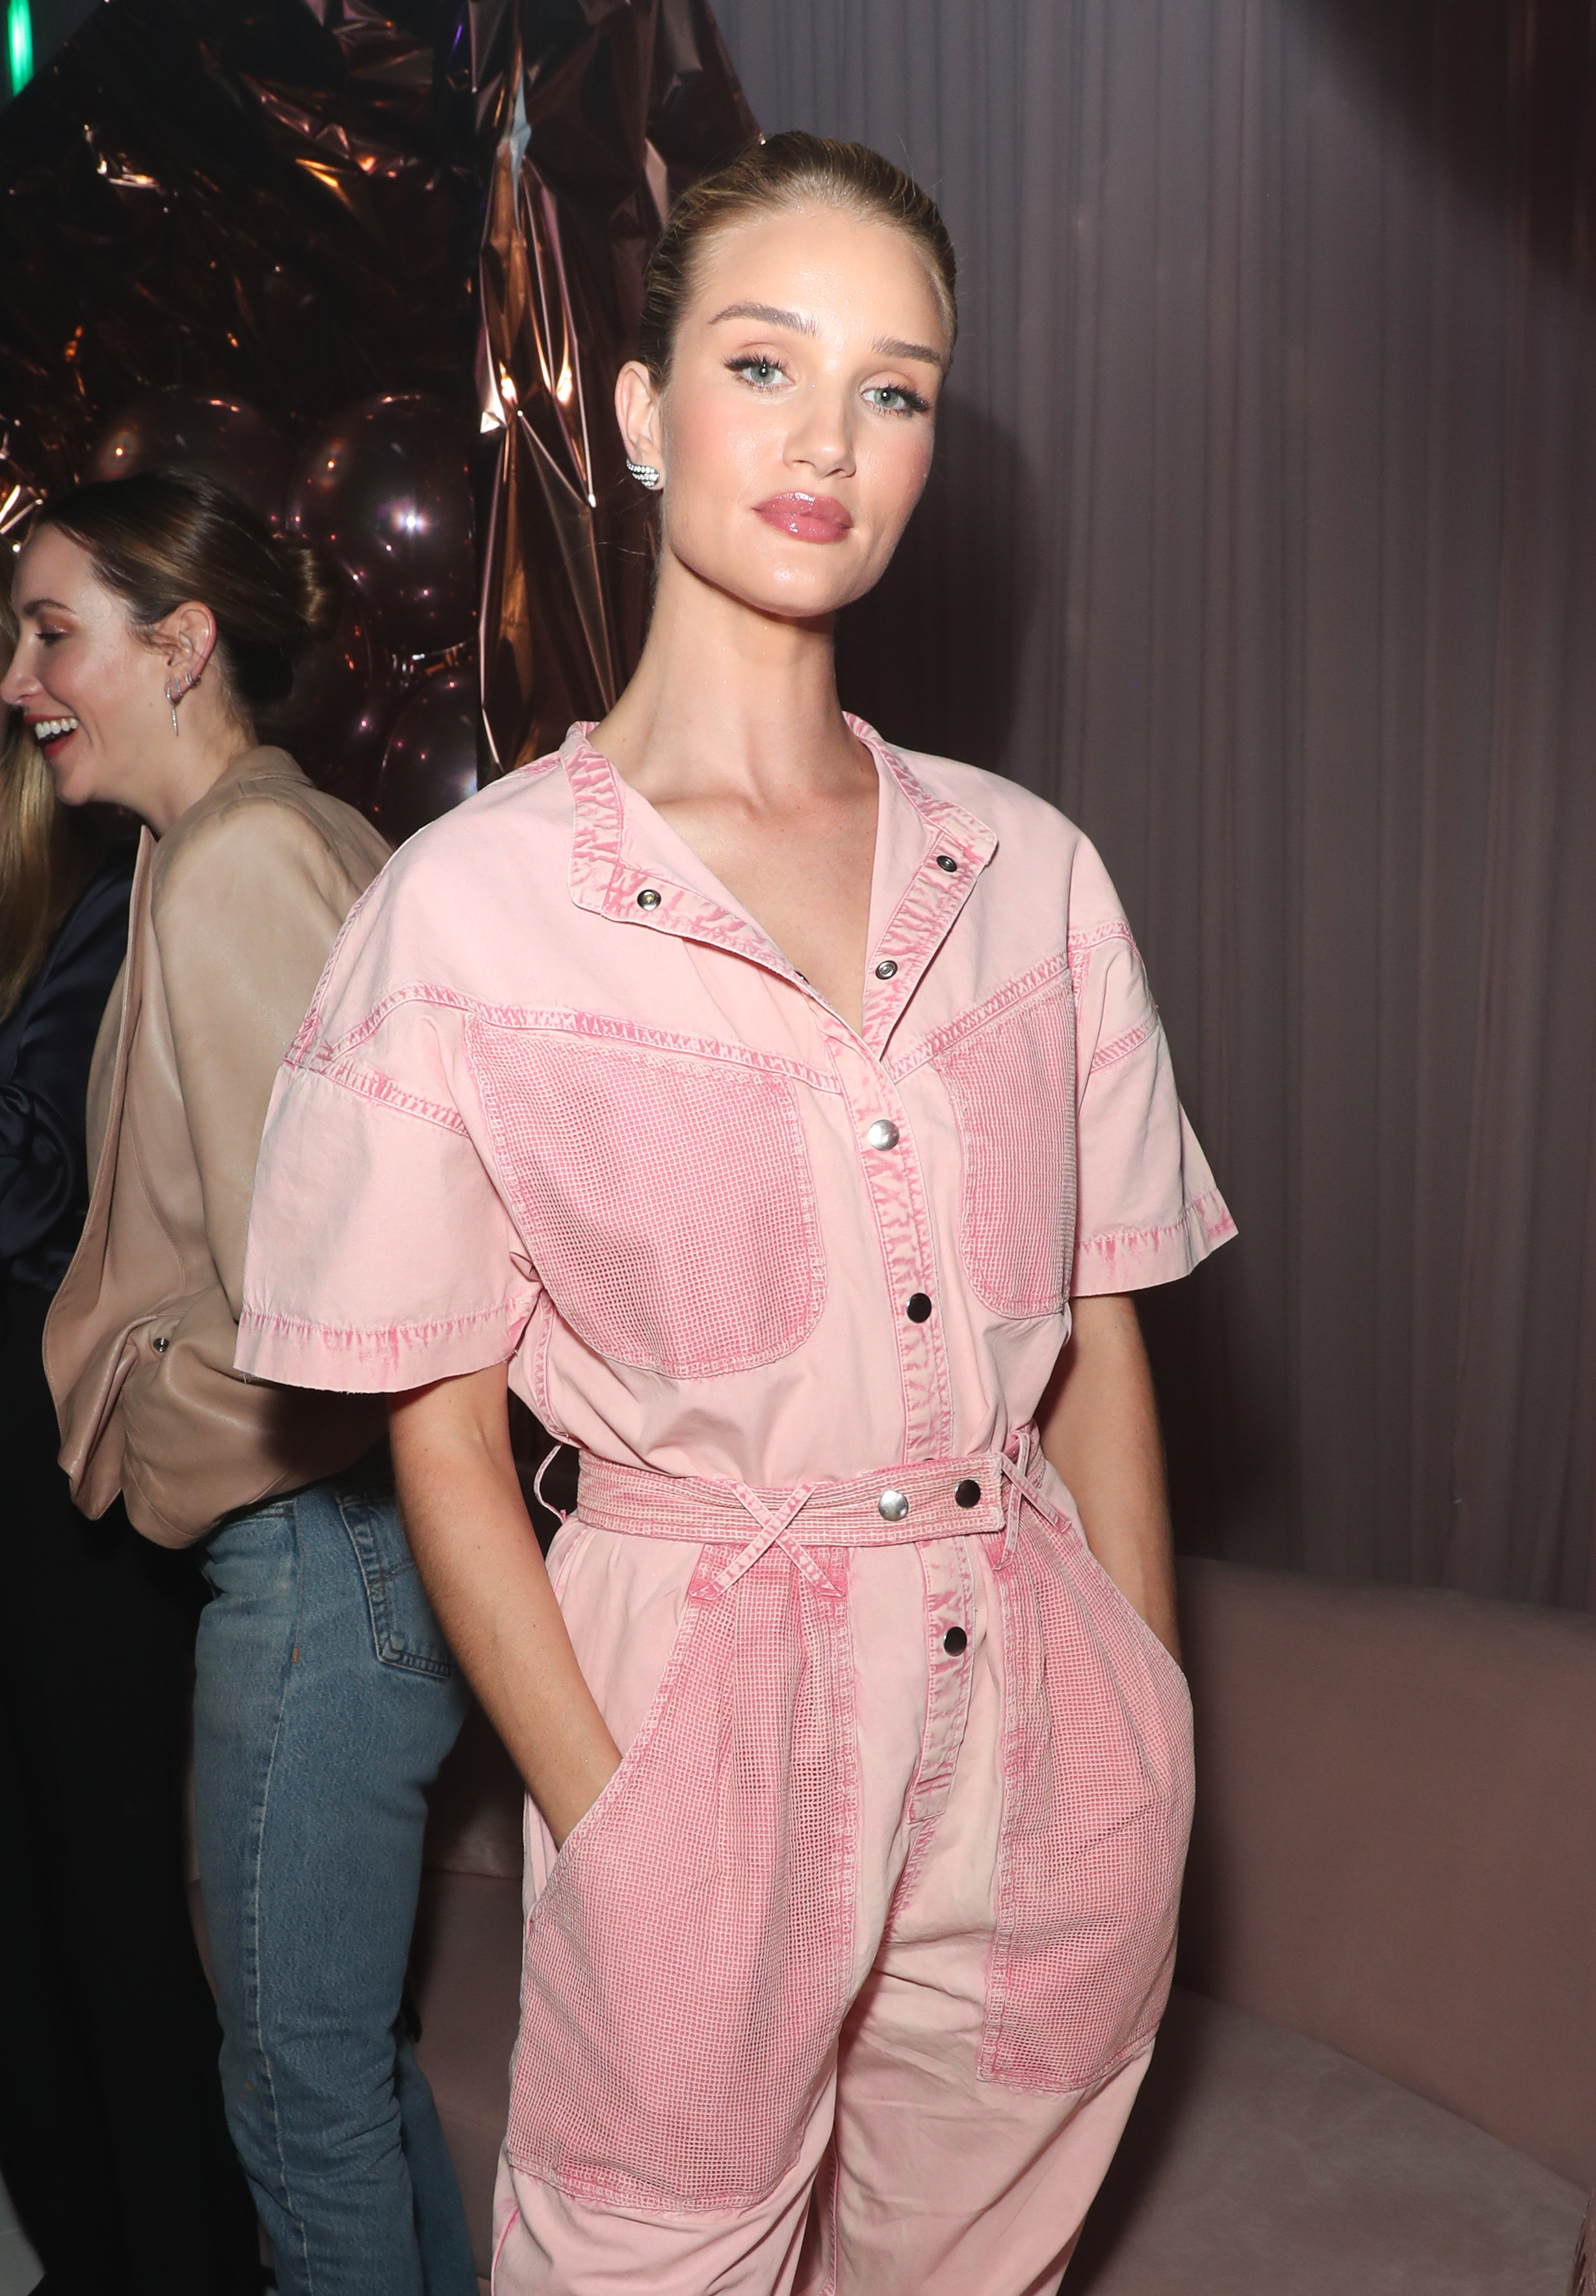 Rosie Huntington Whiteley attends the Patrick Ta Beauty Launch Party in Los Angeles on April 4, 2019.